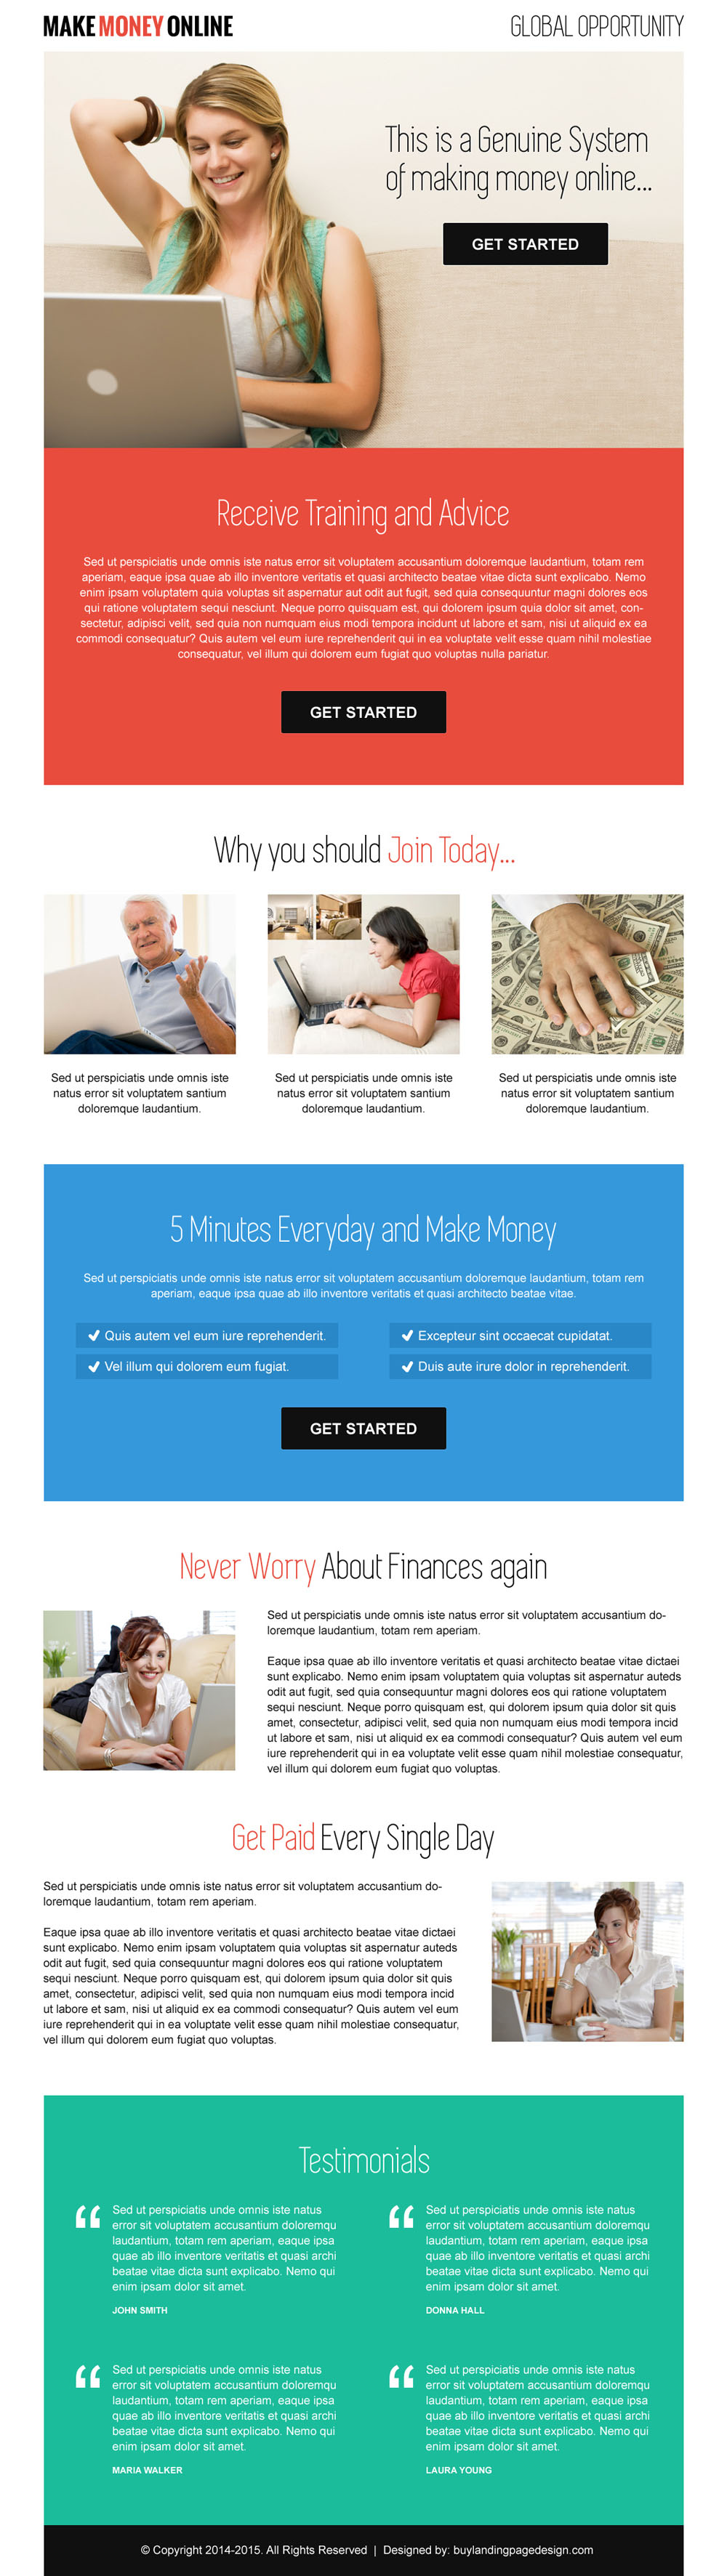 make-money-online-call-to-action-landing-page-design-templates-021